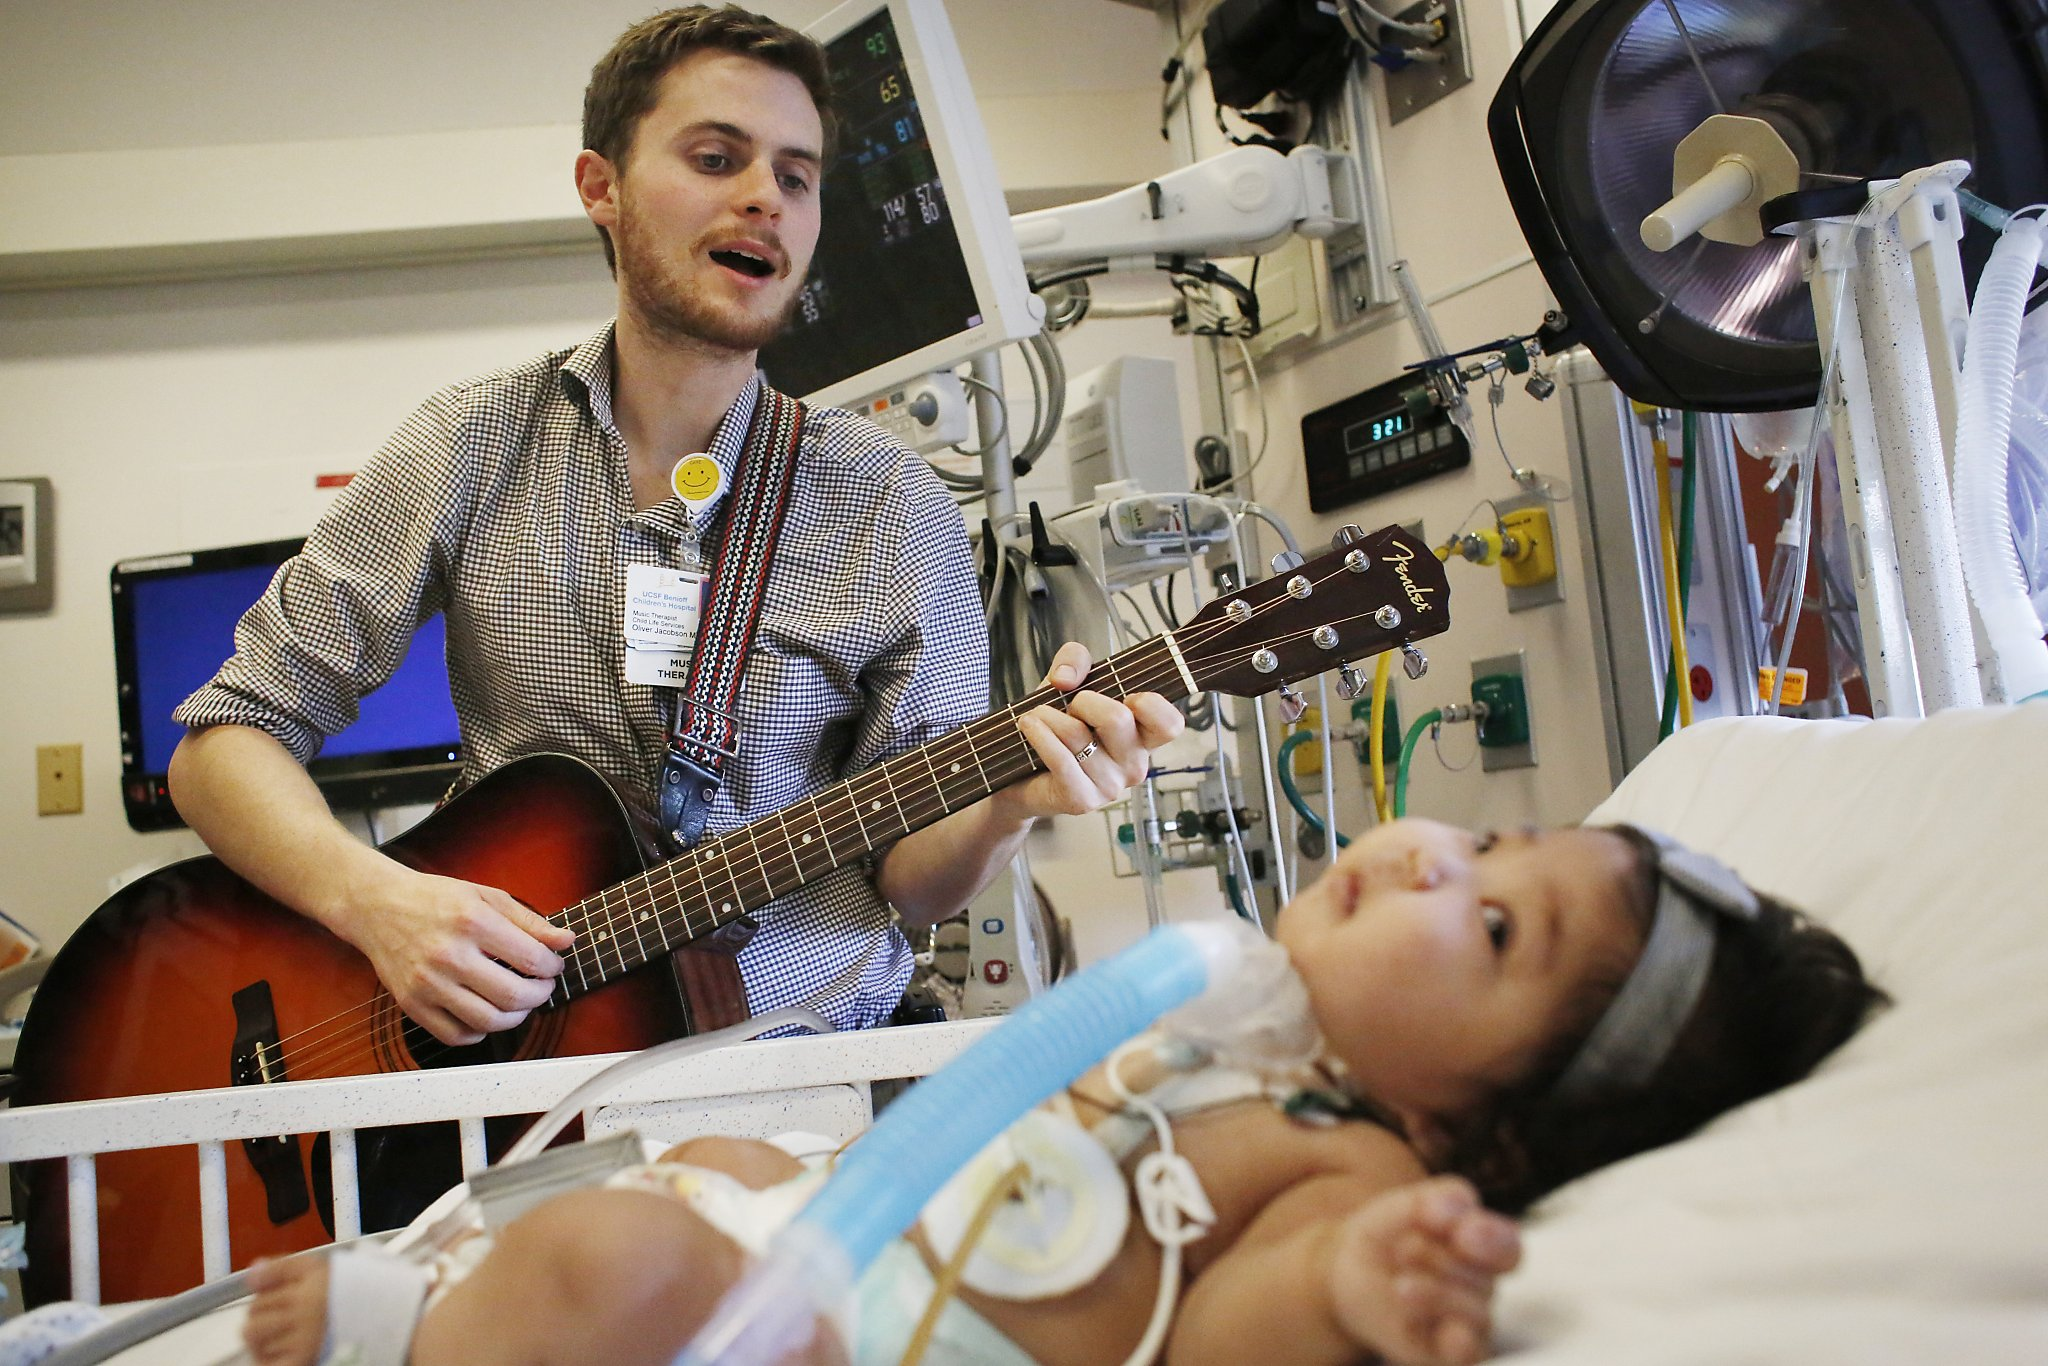 hospital therapist children oliver therapy jacobson ucsf benioff spirit icu pediatric cardiac soothes mike maia mead sing sings san chronicle